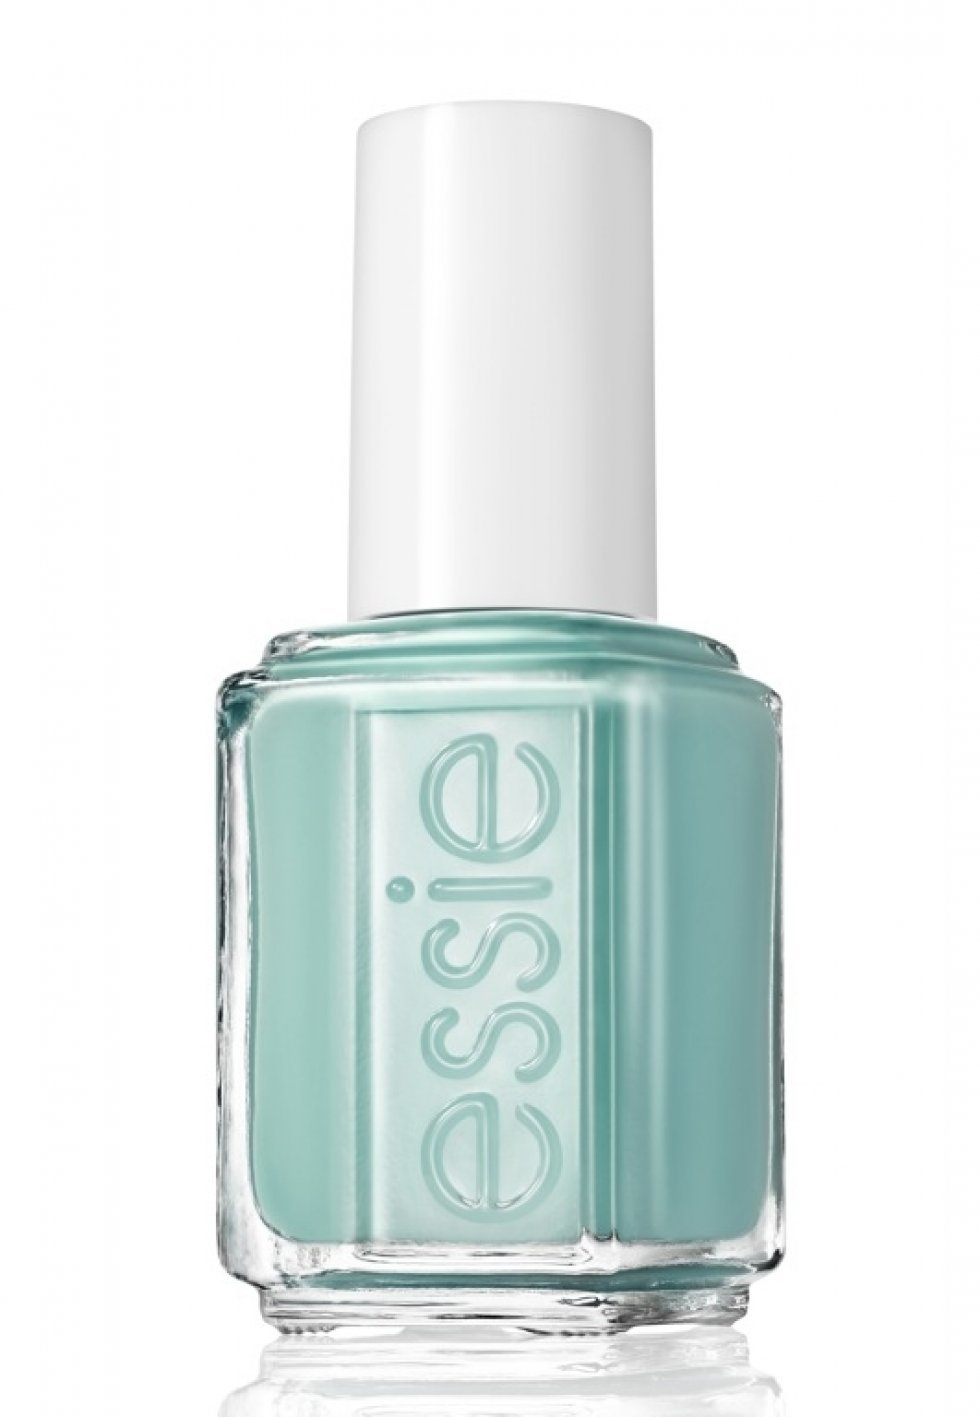 essie where's my chauffeur - essie vinter 2012/2013